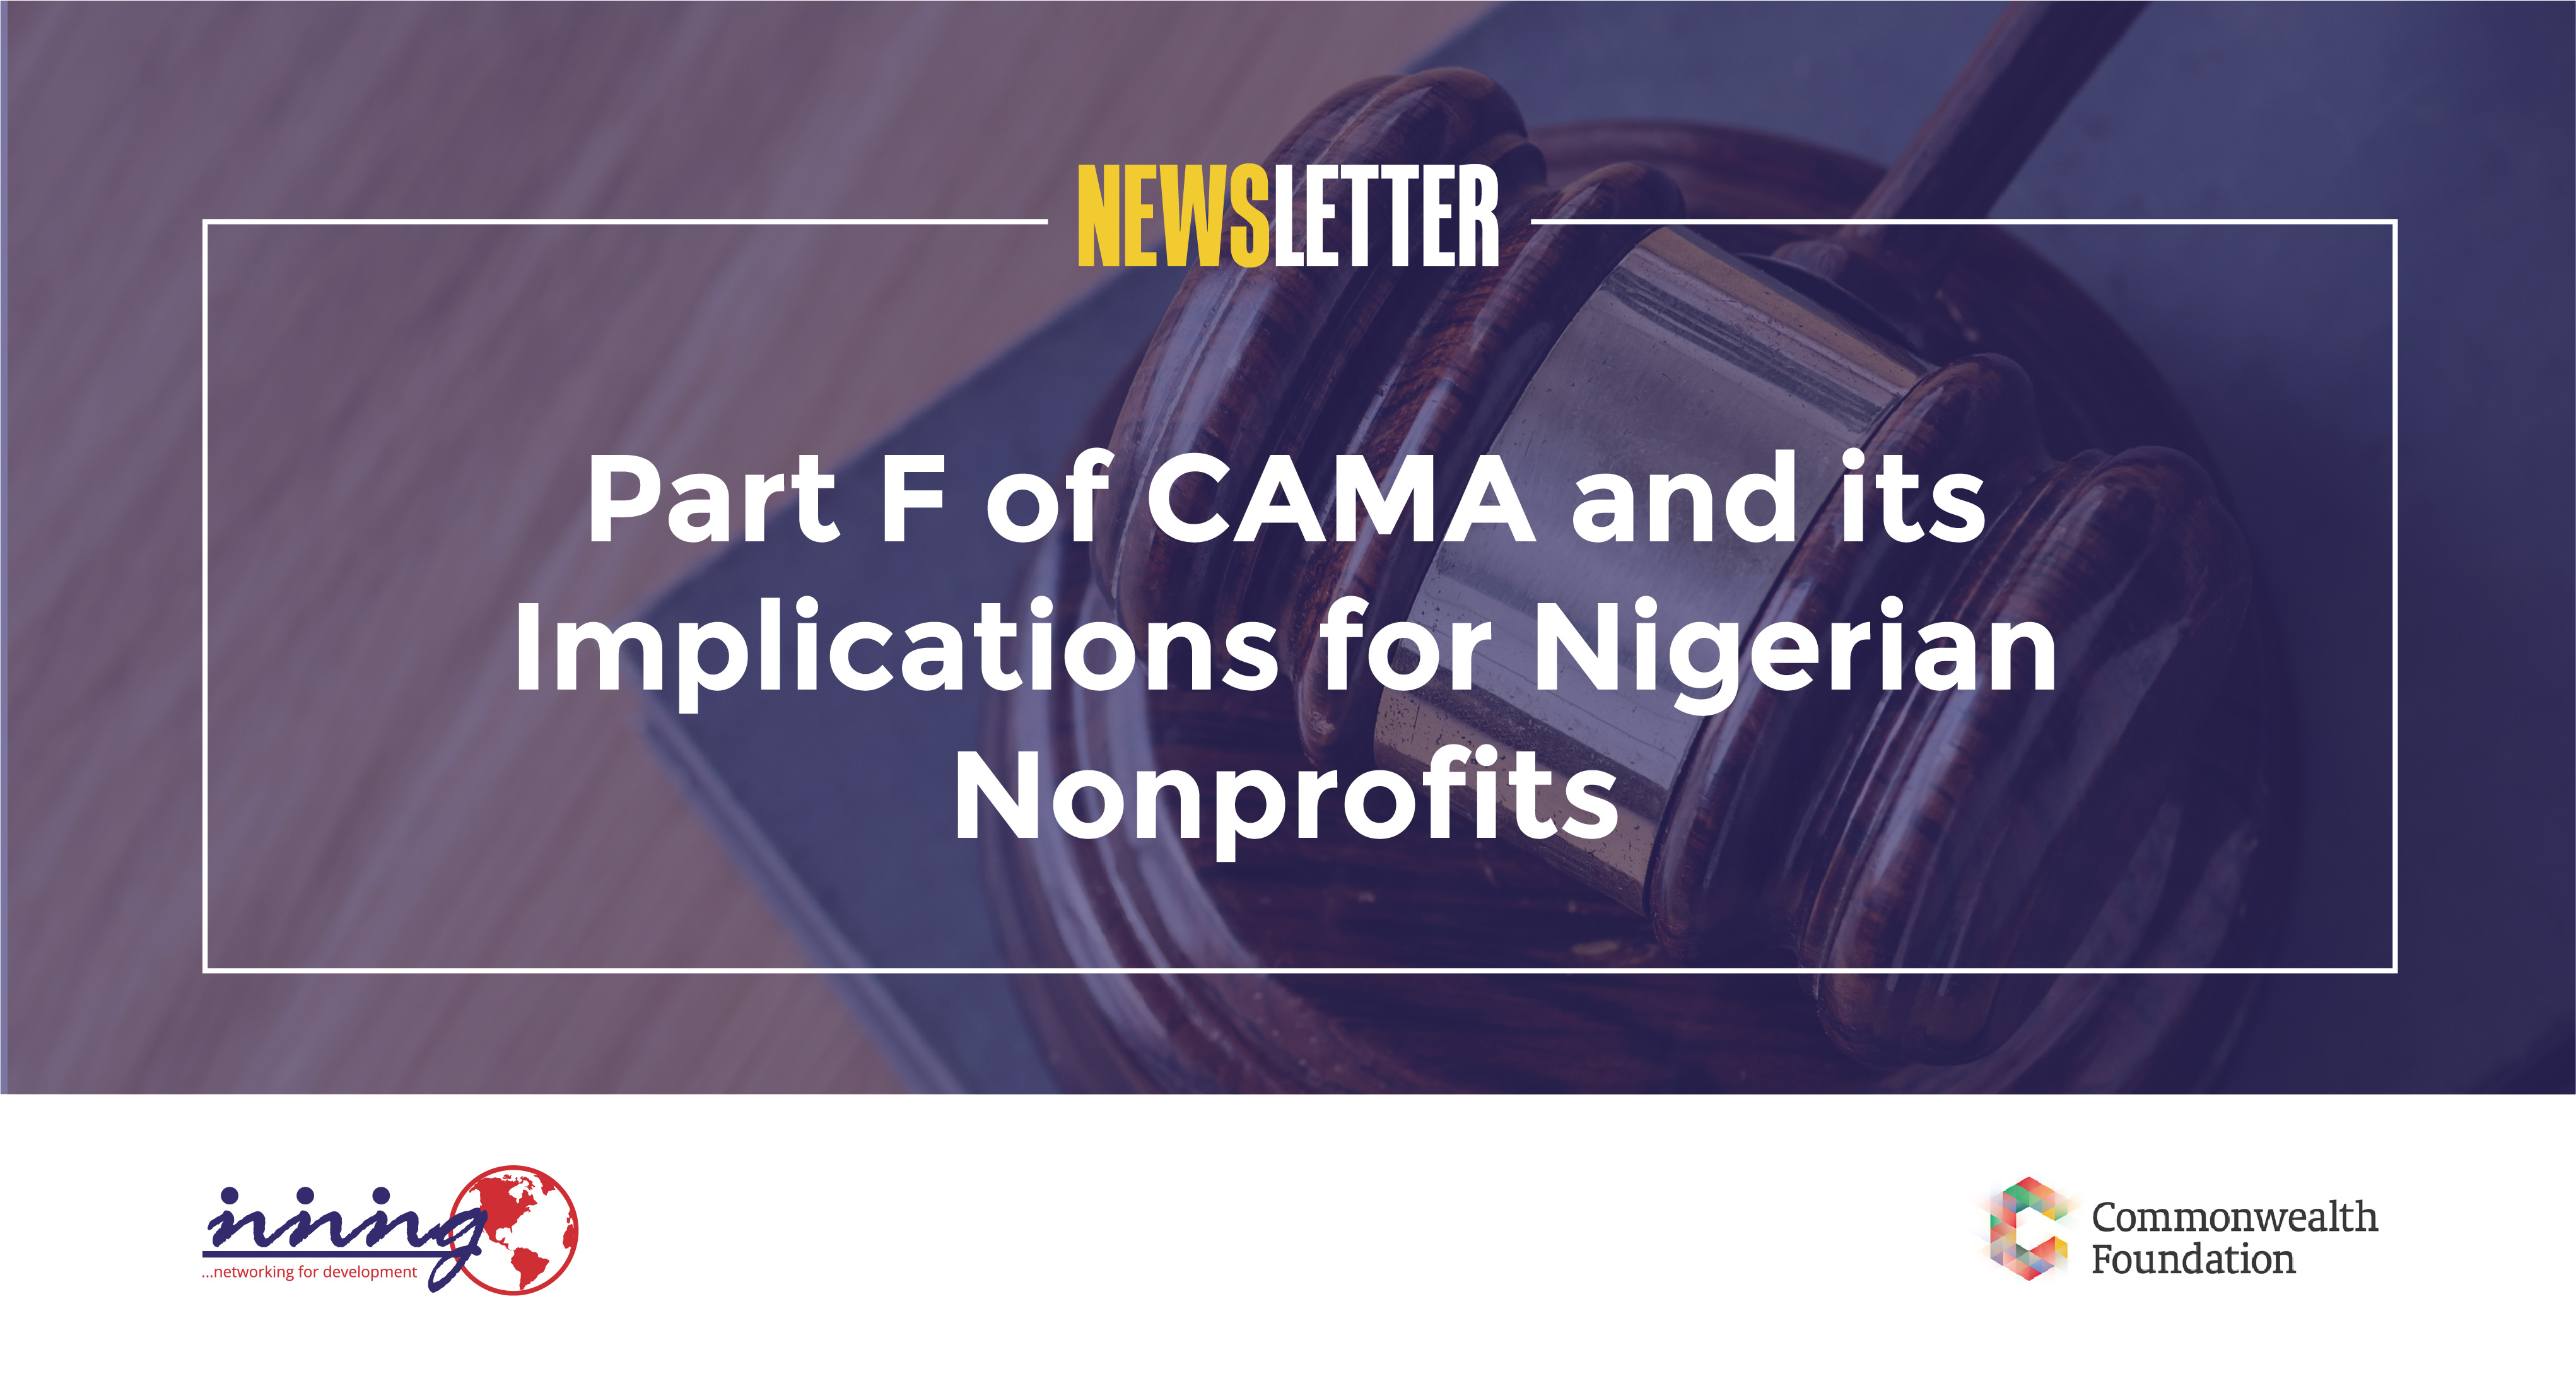 Part F of CAMA and its Implication for Nigerian Nonprofits (January, 2019)